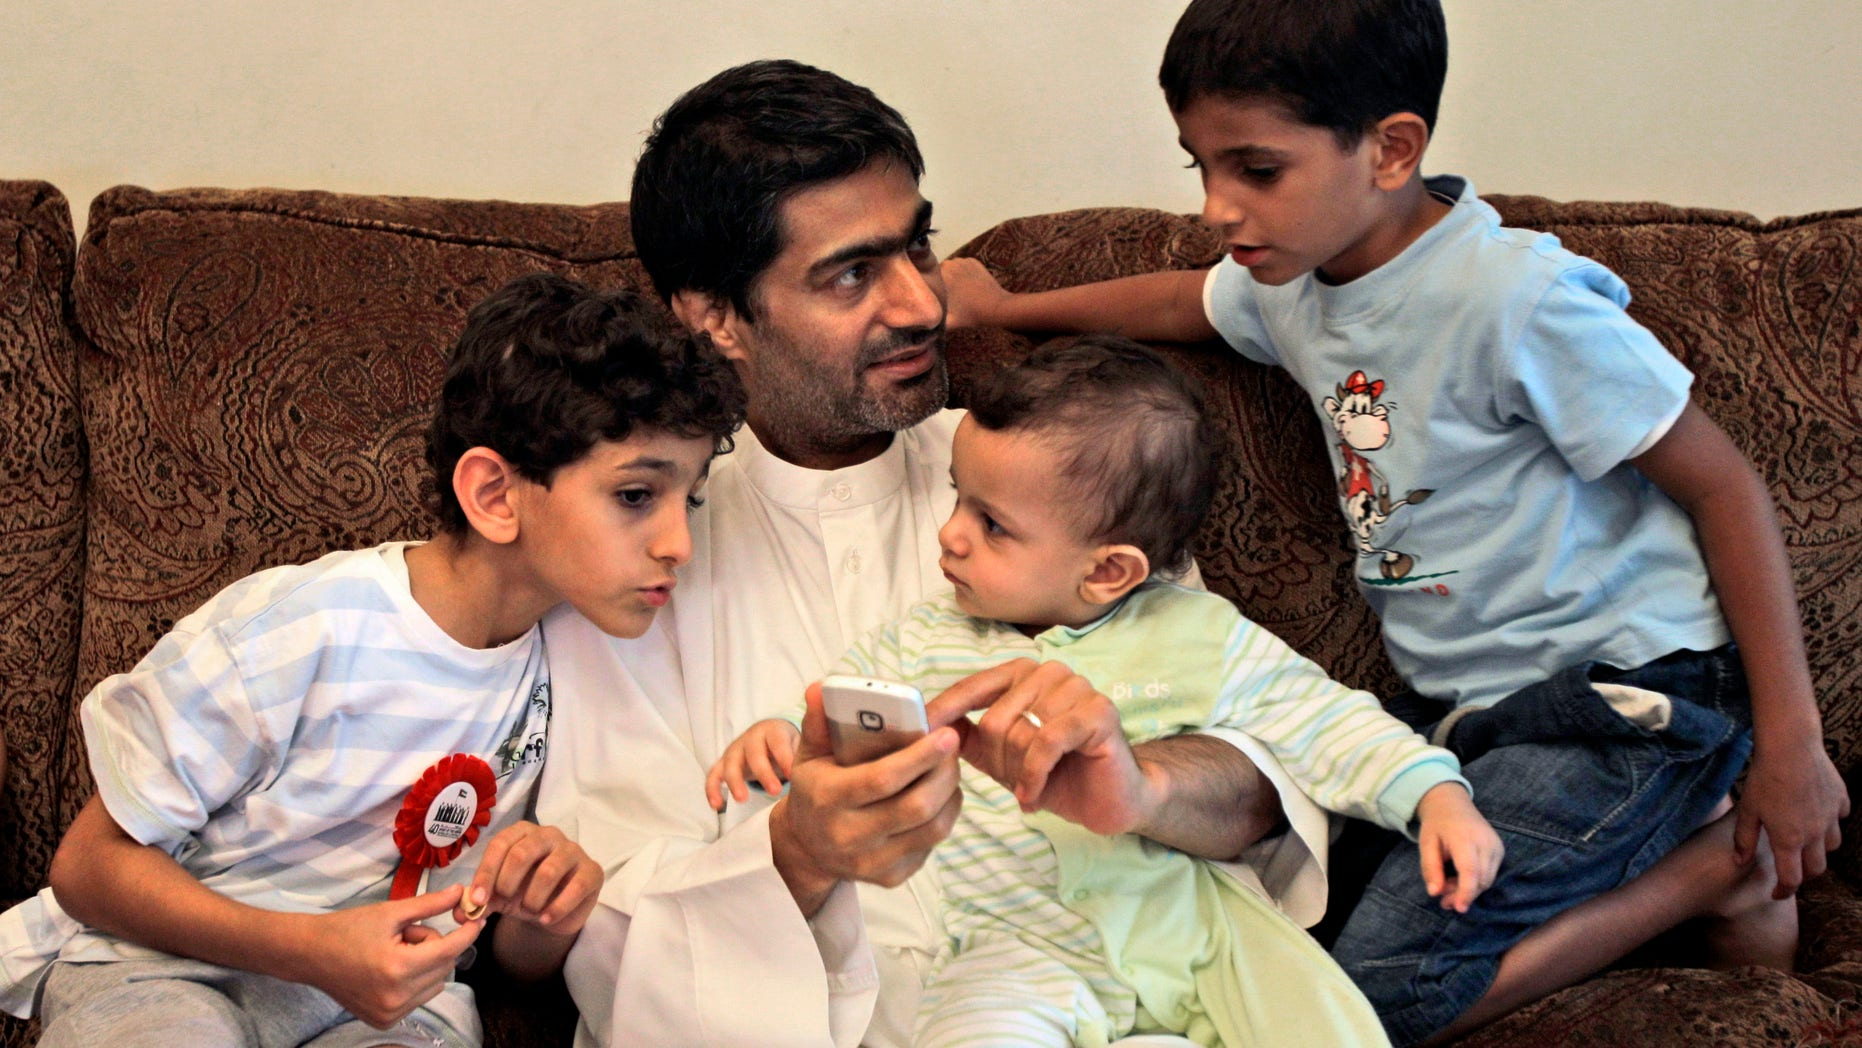 FILE - In this  Tuesday, Nov. 29, 2011 file  photo, Ahmed Mansour, an Emirati blogger and a human rights activists talks with his children after he was pardoned by UAE's president and released from jail in Dubai, United Arab Emirates. In early March 2013, a total of 94 people were put on trial on charges of seeking to overthrow the UAE government and holding ties to the Muslim Brotherhood and other groups. The defendants pleaded not guilty and complained of abuses after their arrests. Mansour and four others including a former legal adviser to the UAE's armed forces were among the first to face arrests for alleged anti-state crimes in early 2011 after signing an online petition urging for political reforms, including free elections for parliament. (AP Photo/Kamran Jebreili, File)